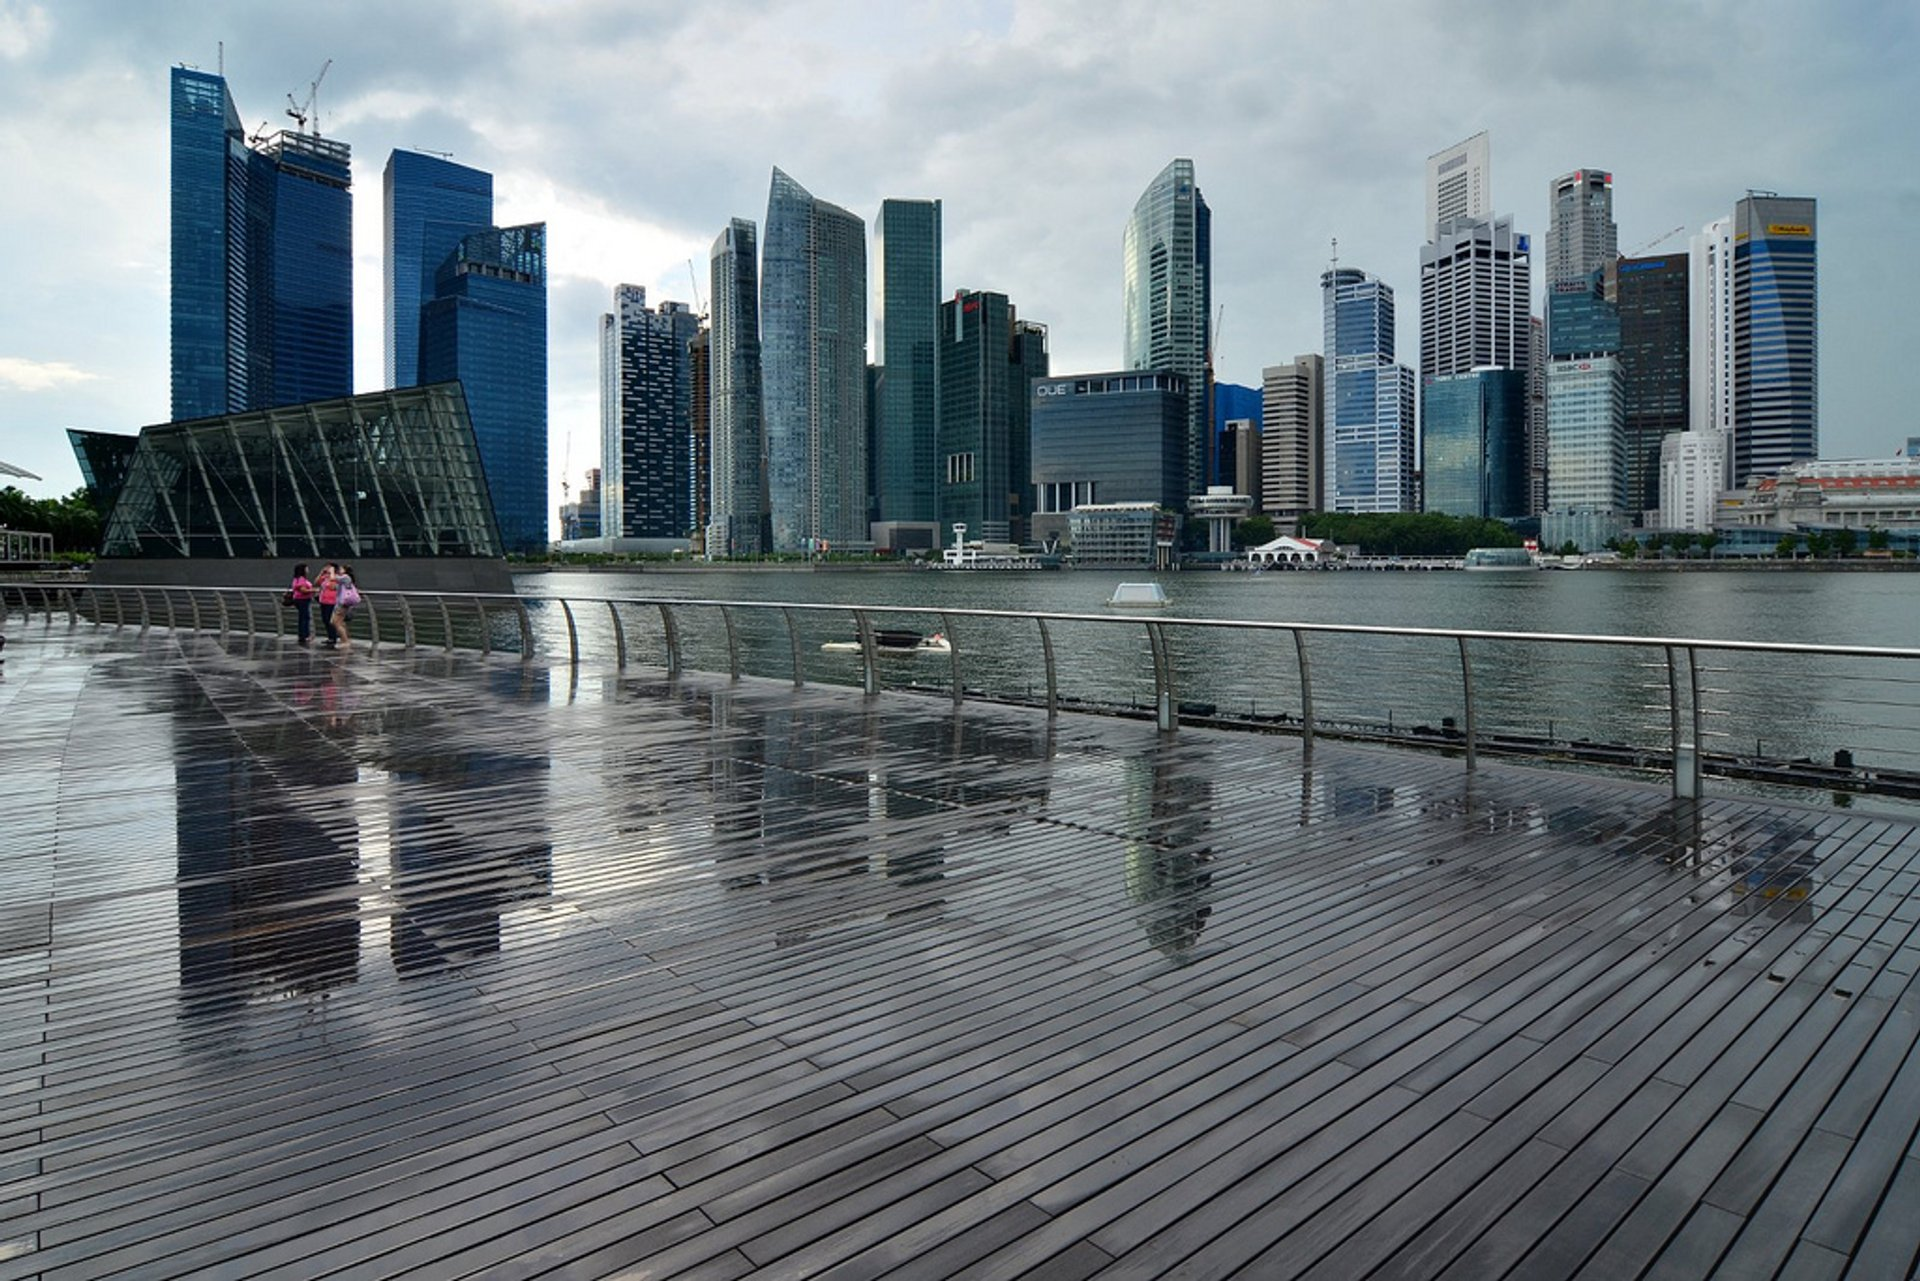 Northeast Monsoon or Wet Season (Winter) in Singapore 2020 - Best Time